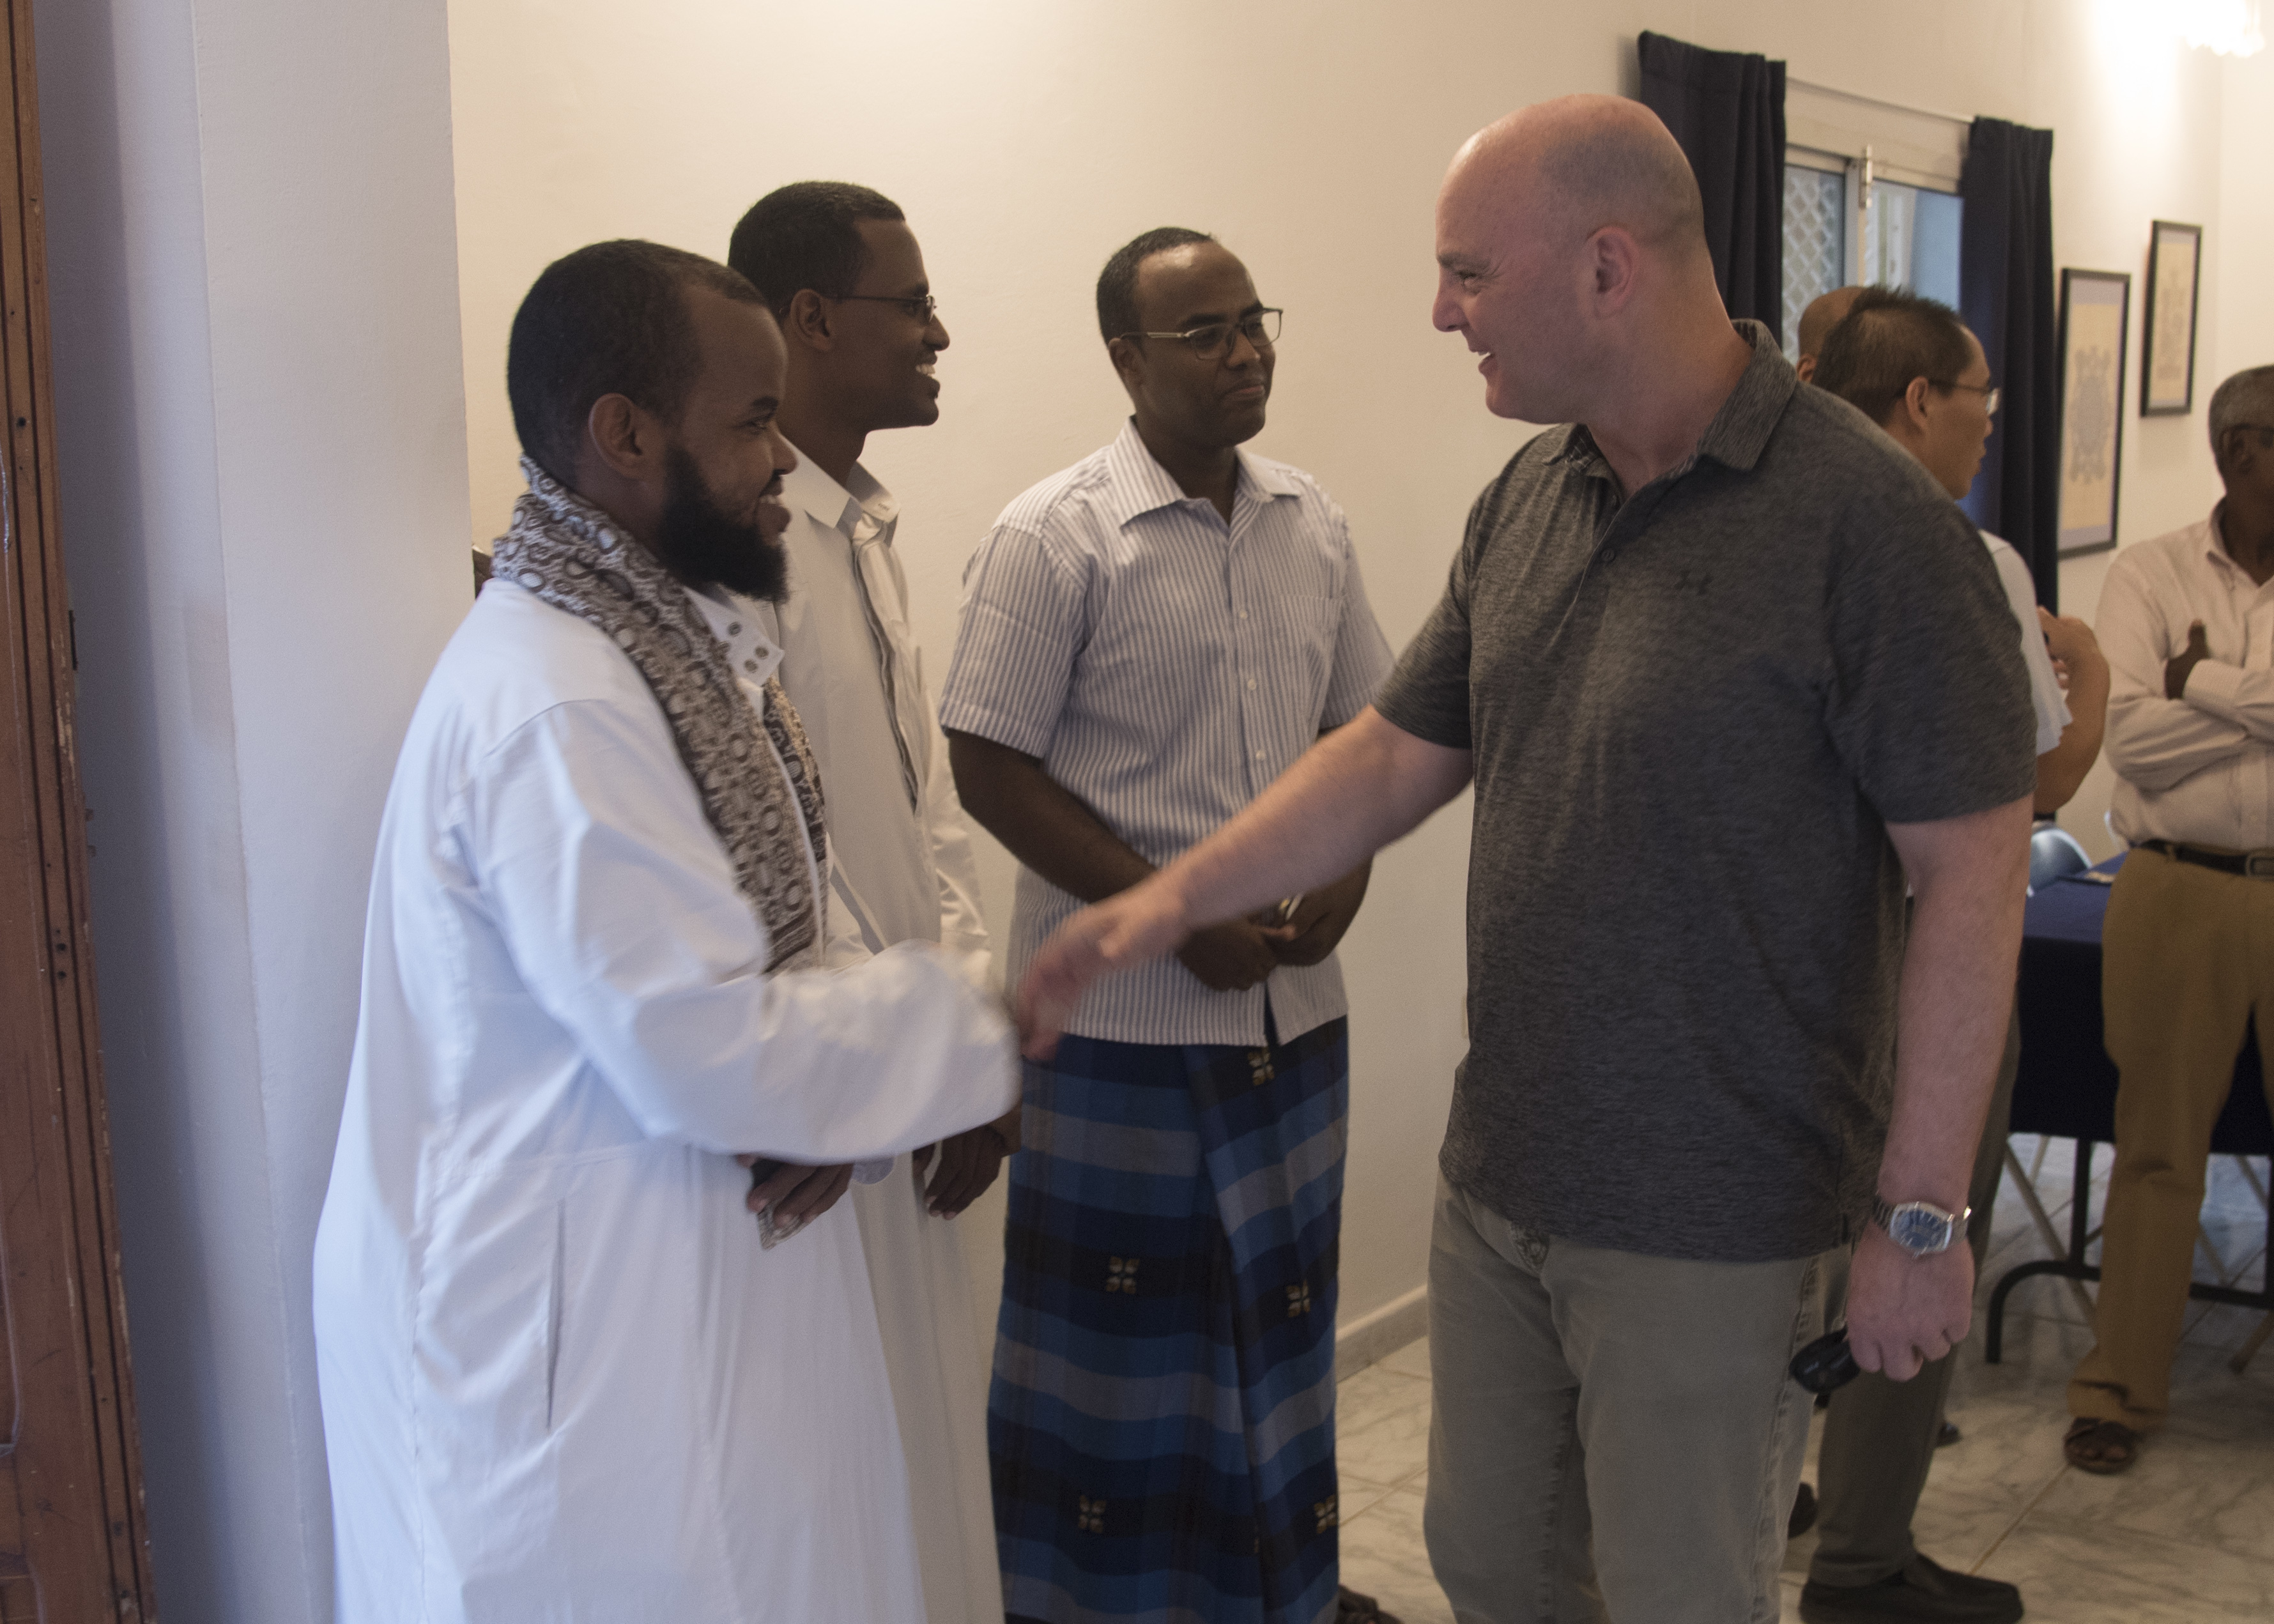 U.S. Air Force Brig. Gen. James R. Kriesel, right, deputy commanding general, Combined Joint Task Force-Horn of Africa, greets a Djiboutian guest at an Iftar celebration at the home of U.S. Embassy Djibouti's senior defense attaché in Djibouti, May 12, 2019. The Iftar is a fast-breaking meal Muslims eat after sunset during Ramadan, the ninth month of the Islamic year observed with daily fasting from dawn to sunset. (U.S. Air Force photo by Staff Sgt. Kirsten Brandes)